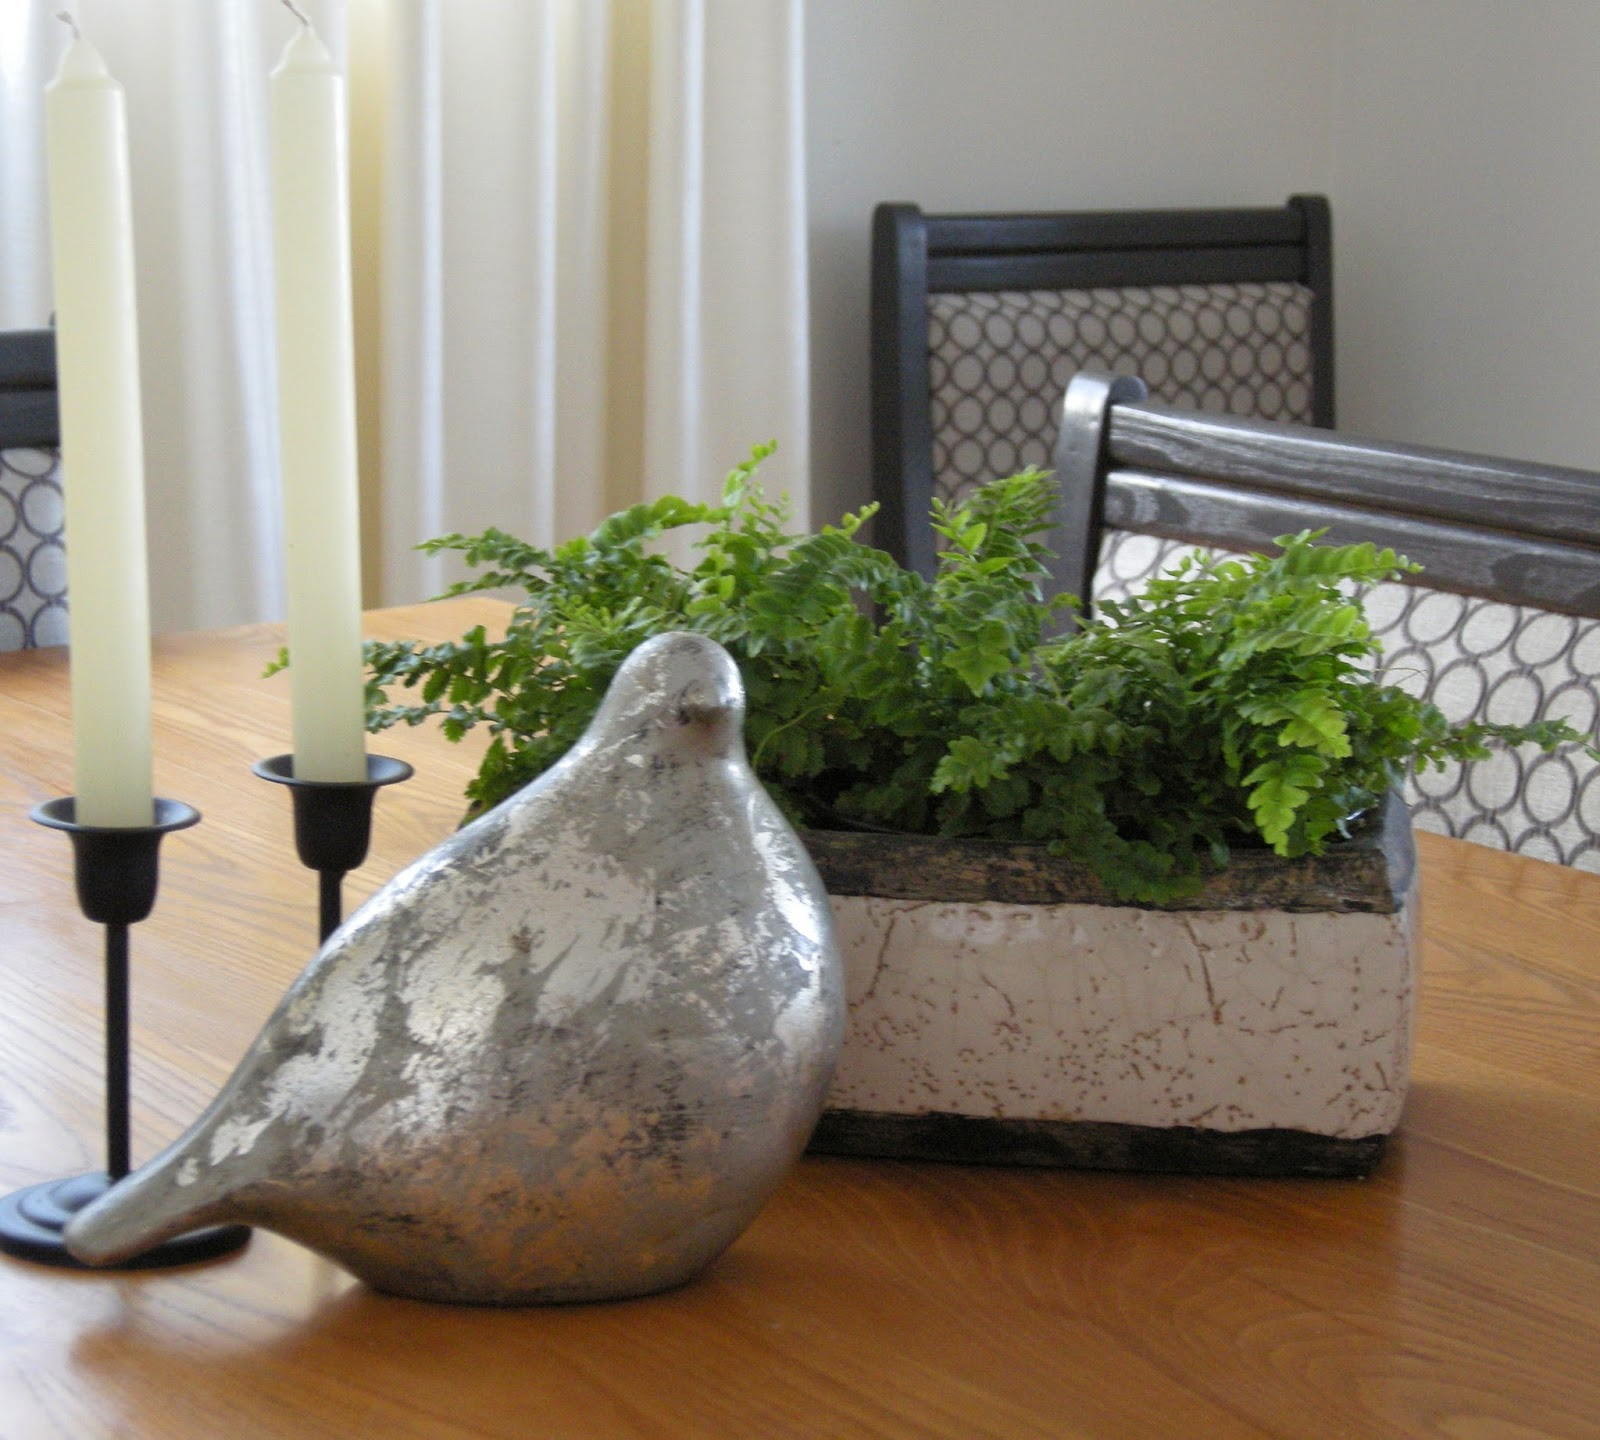 candlesticks, silver leaf bird, trough planter, boston ferns, centrepiece